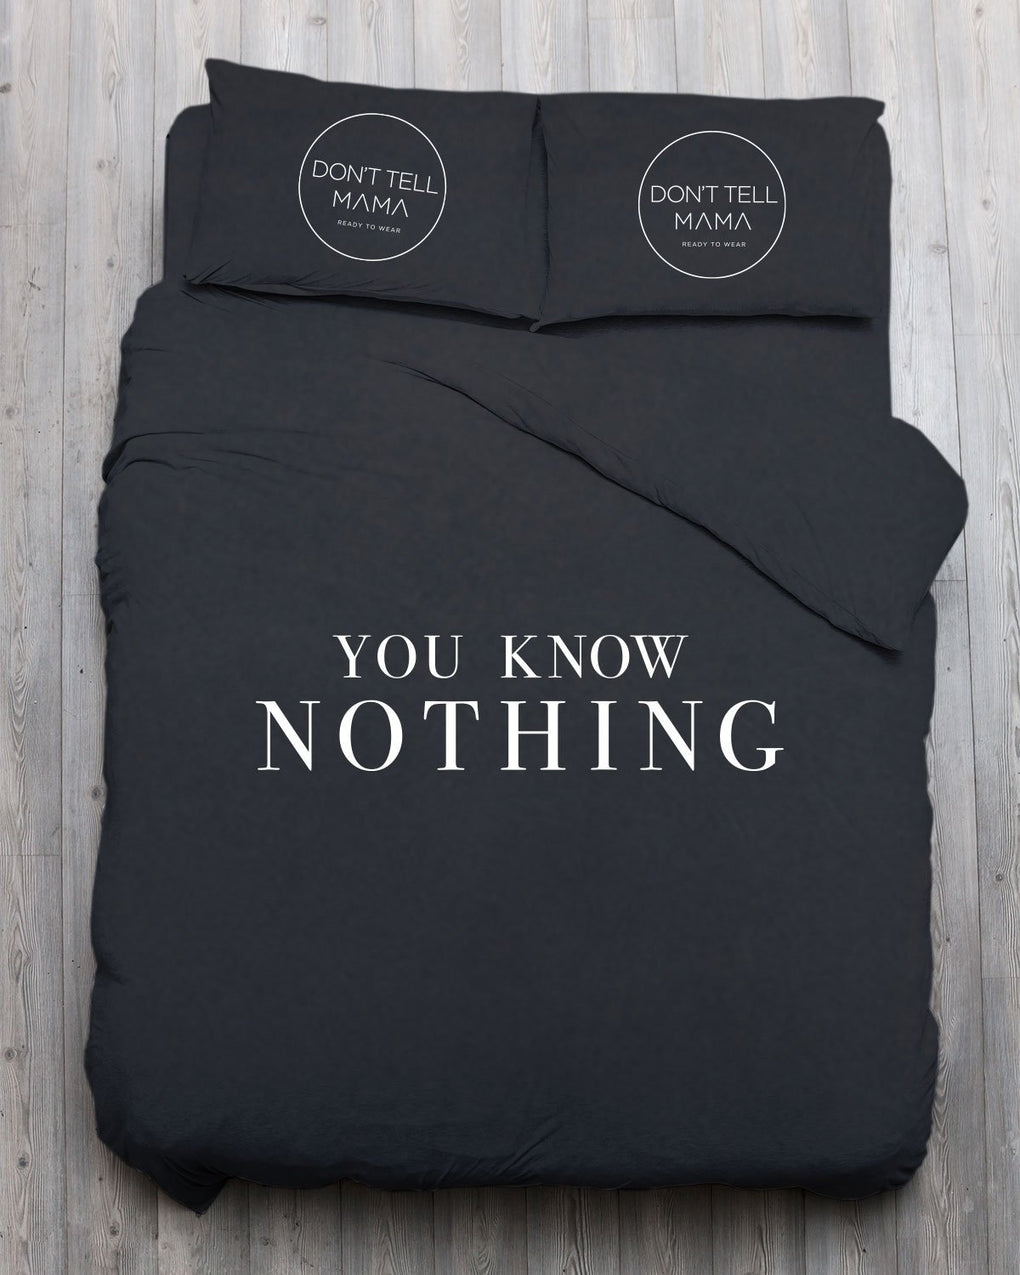 KNOW NOTHING BEDWEAR // DON'T TELL MAMA